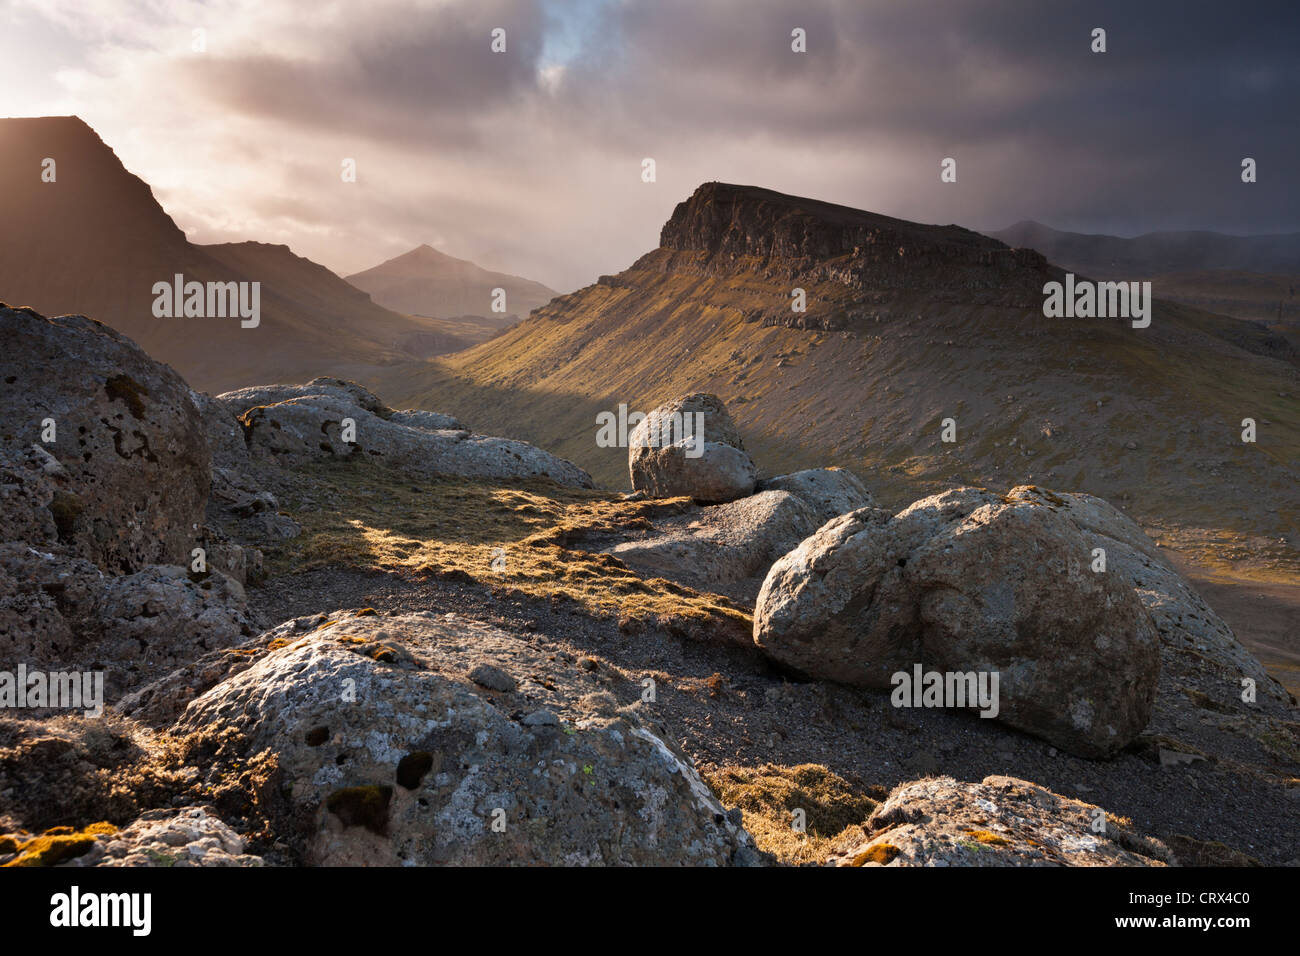 Mountainous interior of the island of Streymoy, one of the Faroe Islands. Spring (June) 2012. Stock Photo